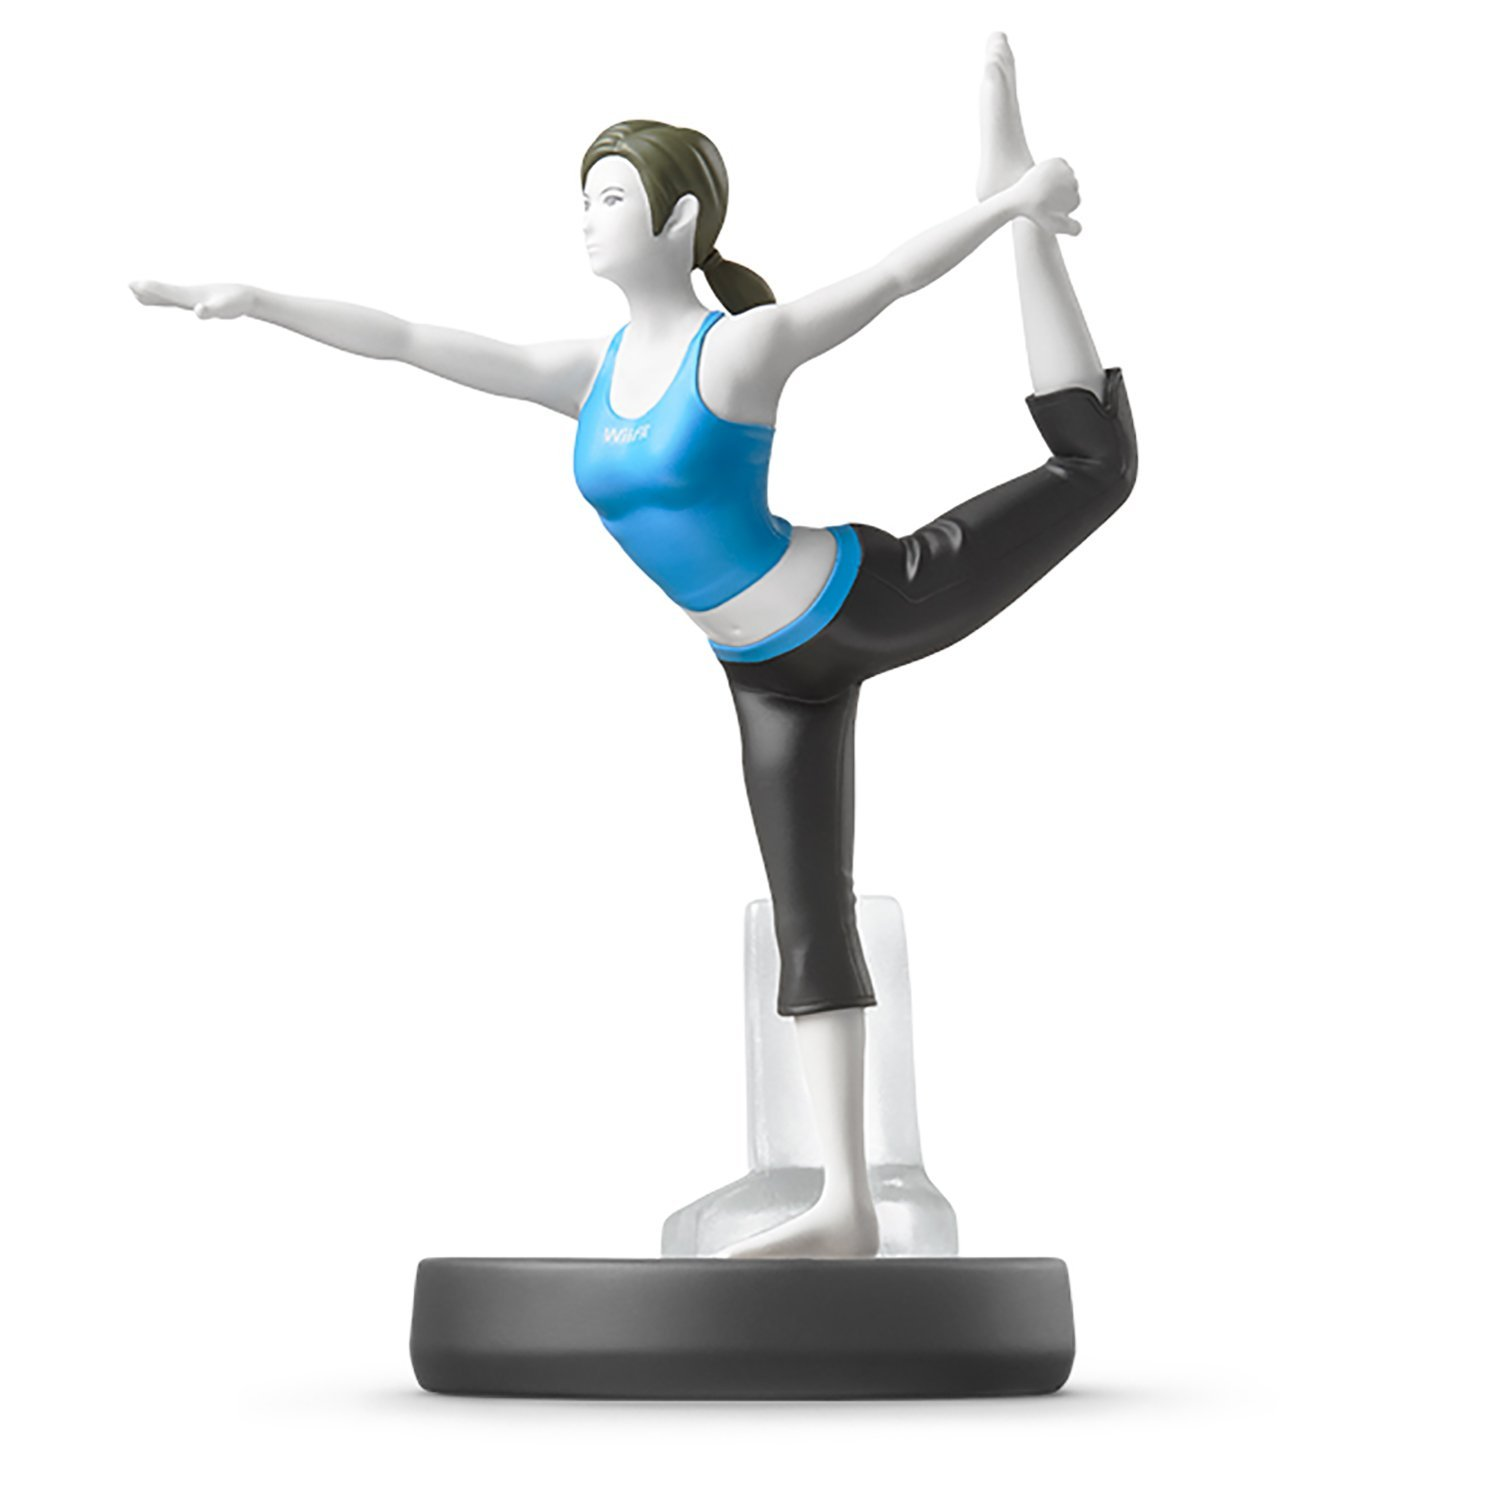 Amiibo wii fit  瑜珈 運動 互動 Wii U/New3DS/New3DS LL 公仔